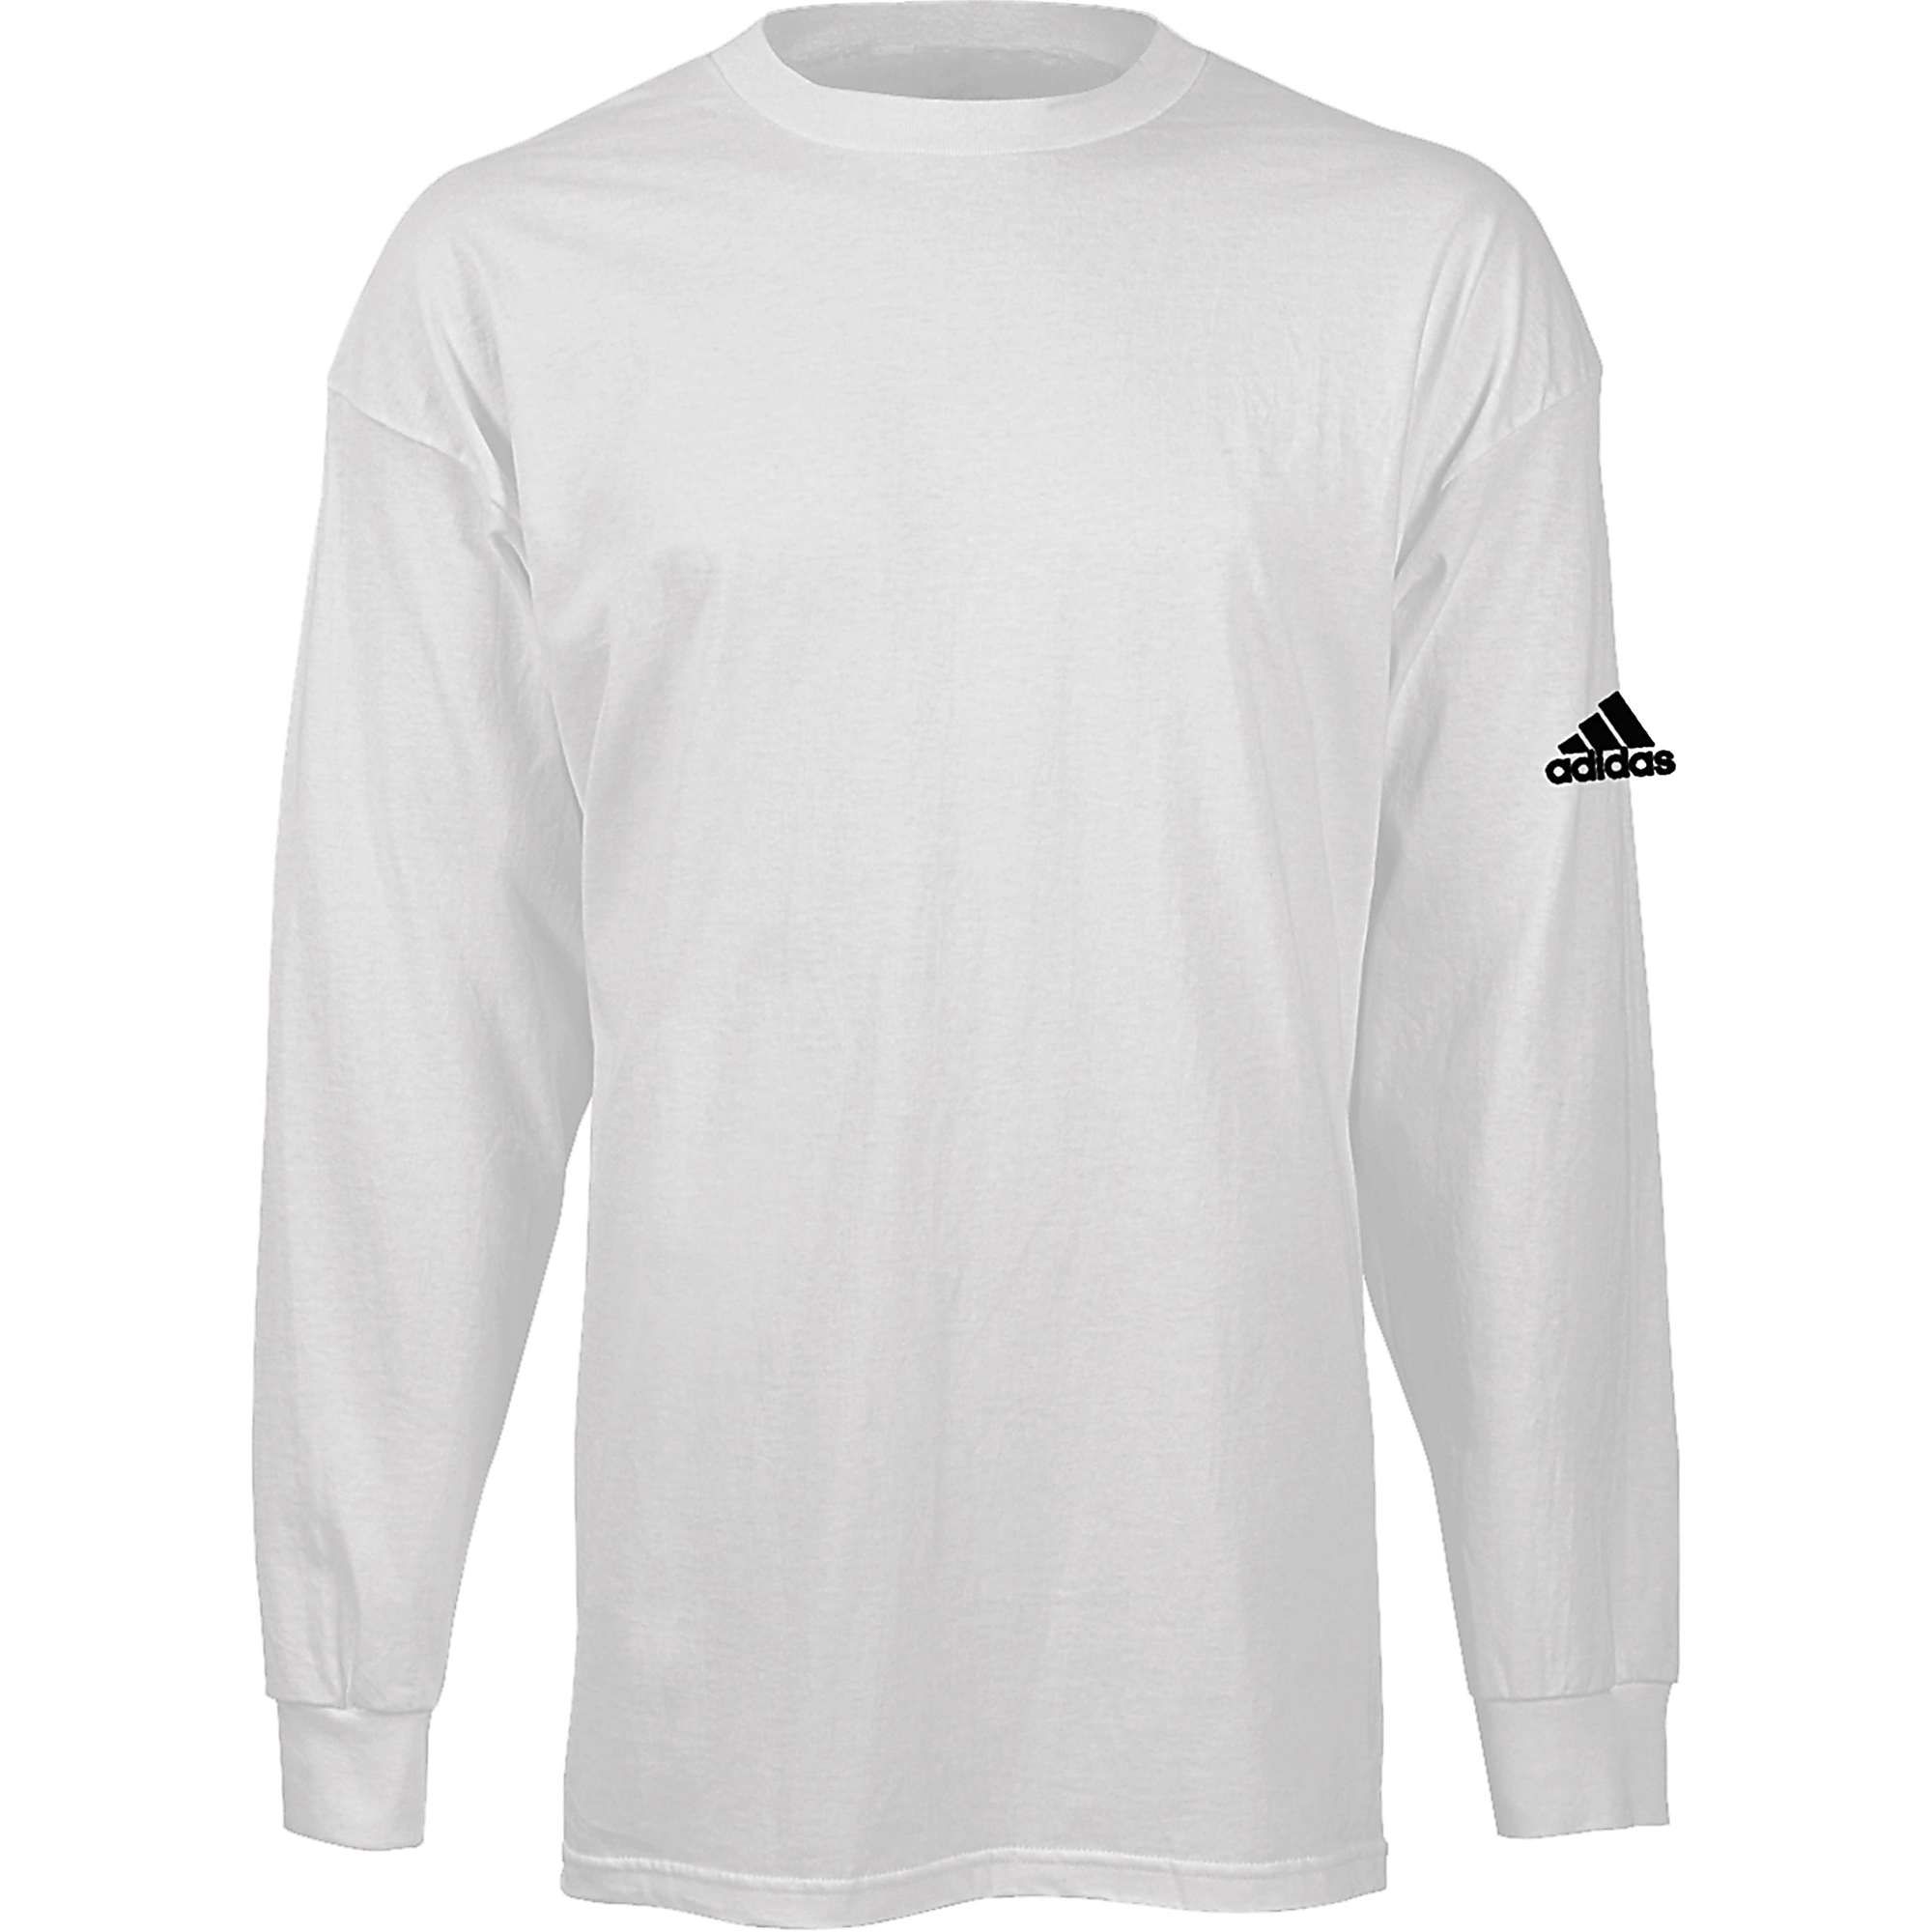 Adidas men 39 s long sleeve logo t shirt ebay for Adidas long sleeve t shirt with trefoil logo